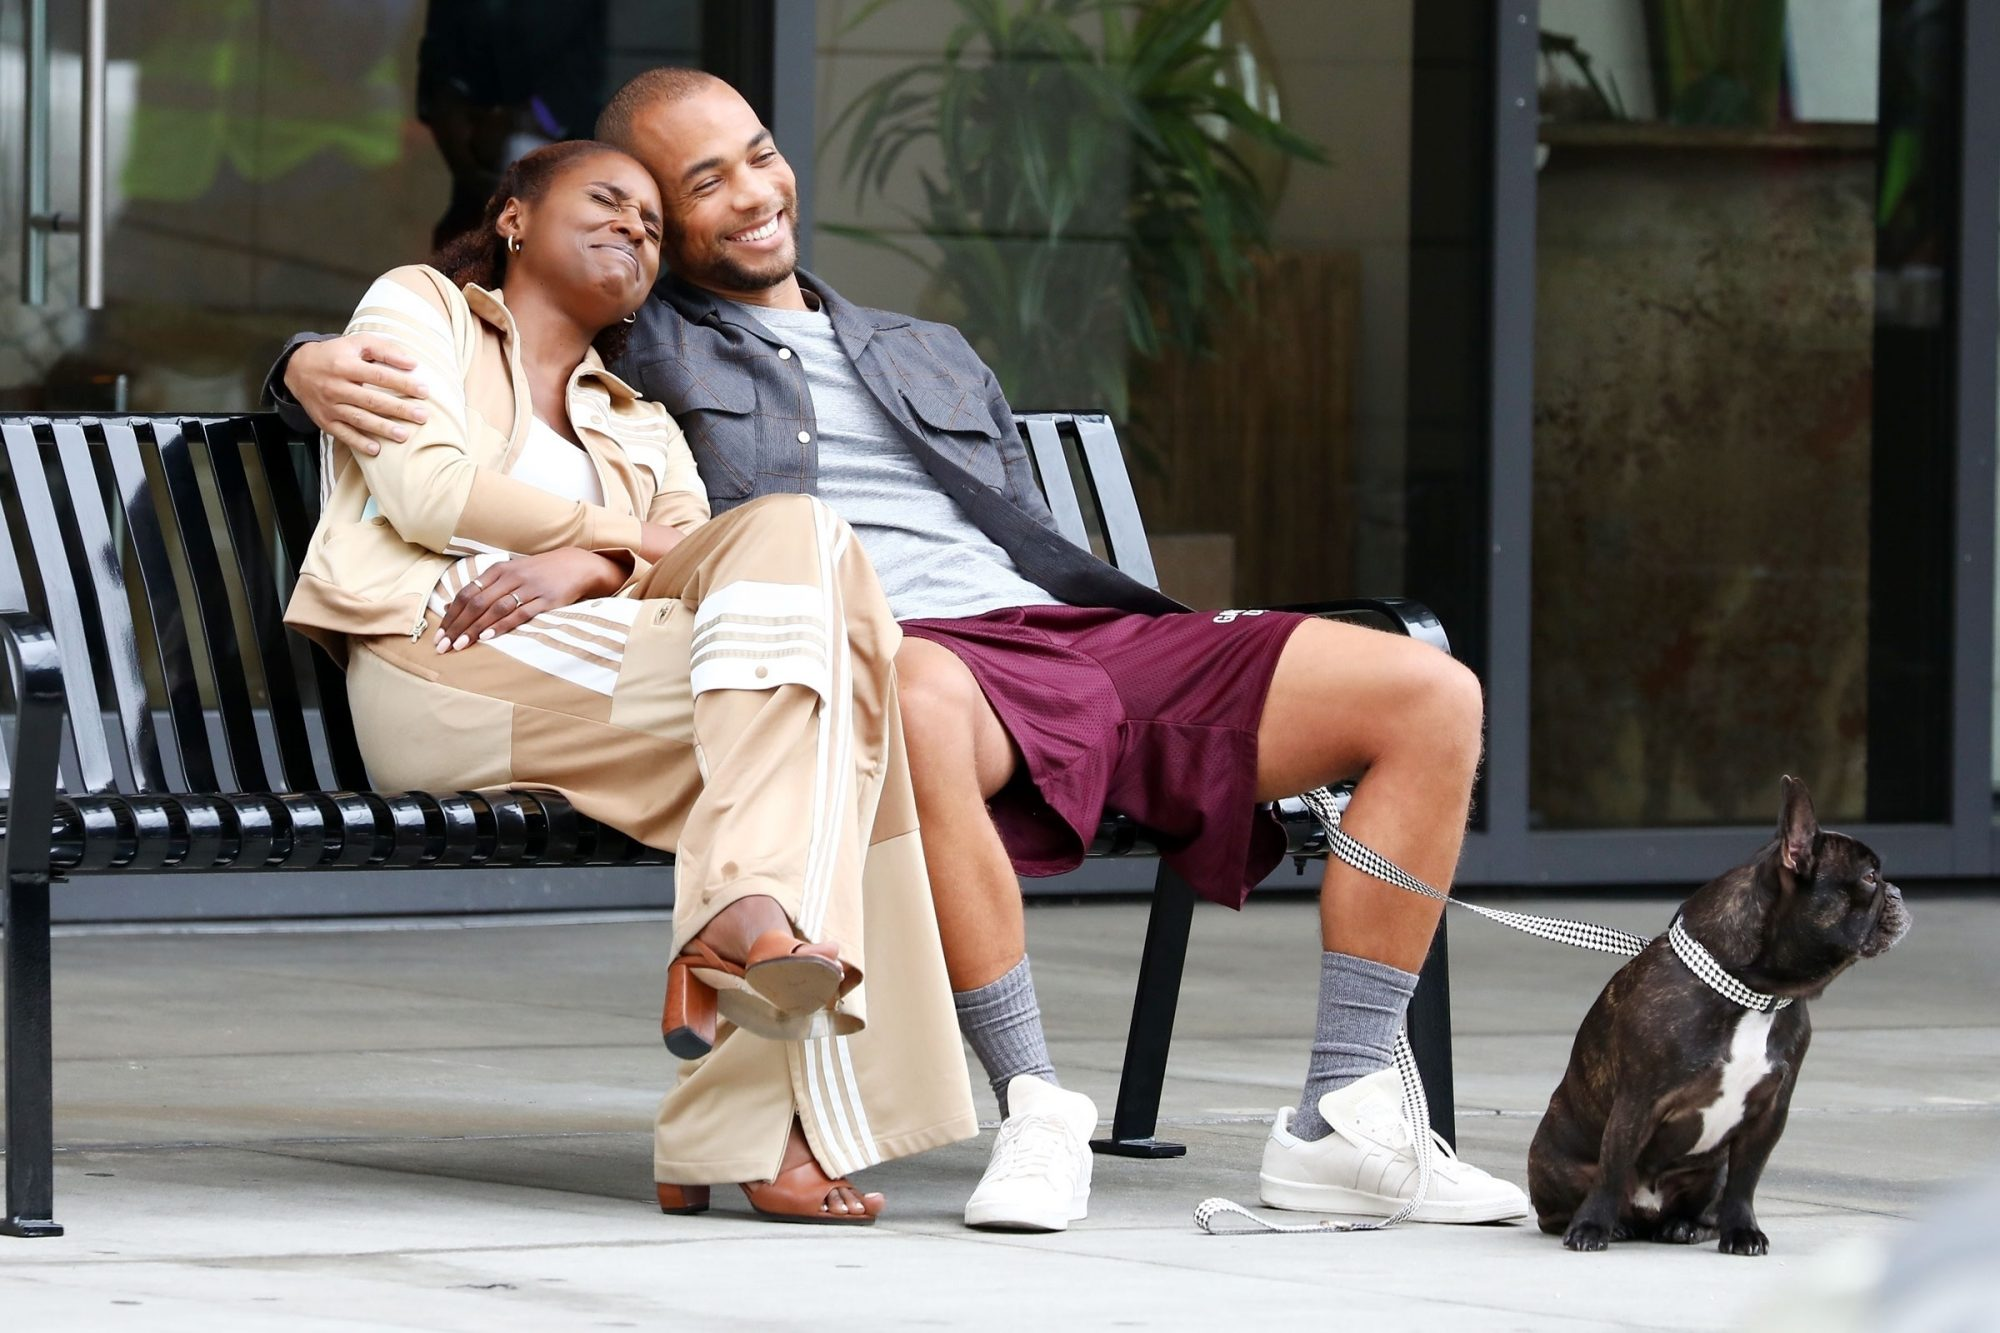 Issa Rae and Kendrick Sampson get cozy filming a scene for 'Insecure'